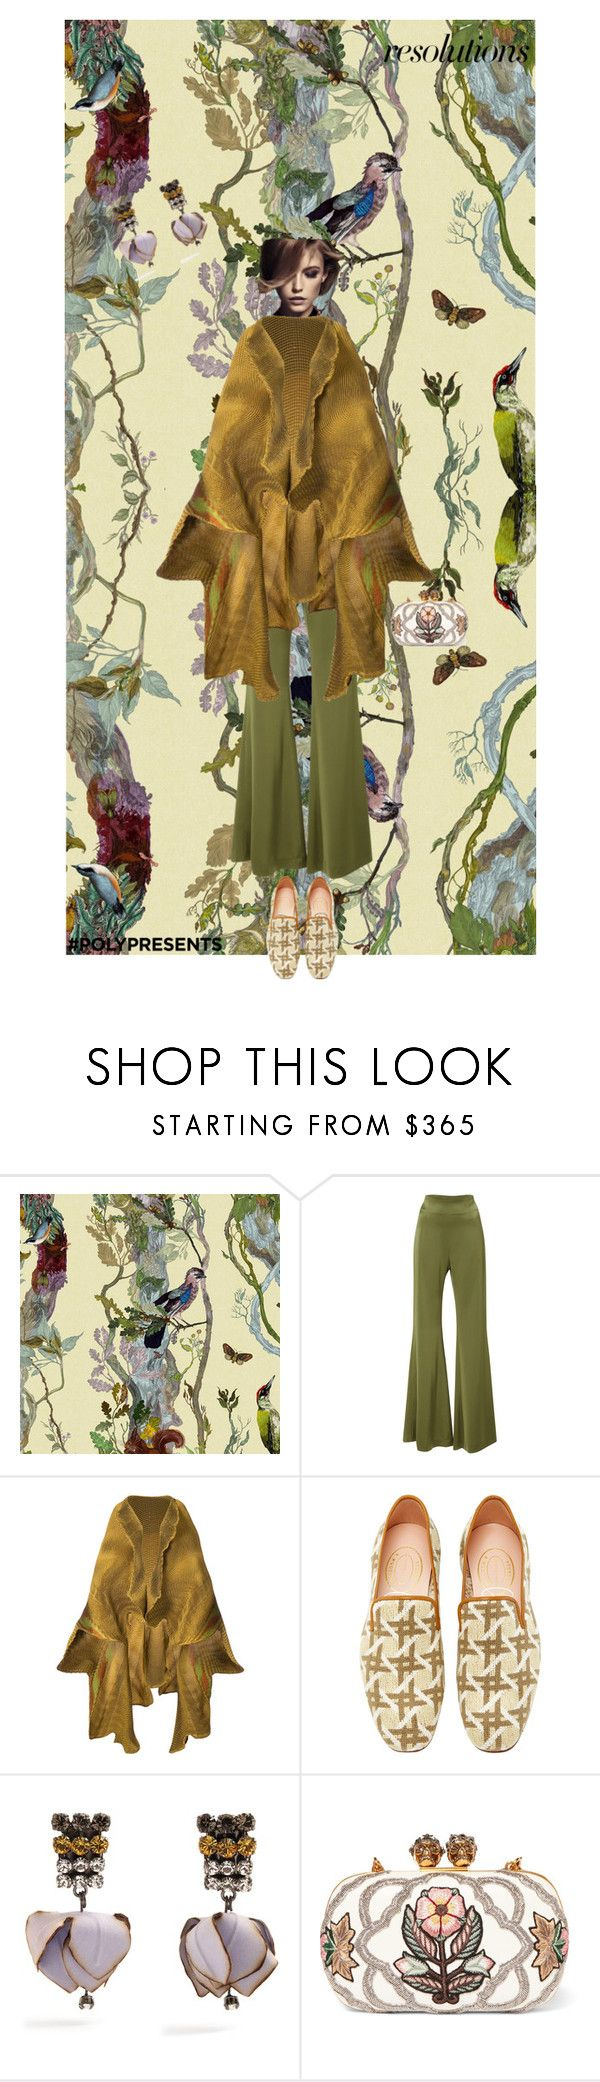 """""""#PolyPresents: Fairytale"""" by ladyarchitect ❤ liked on Polyvore featuring Timorous Beasties, Galvan, Givenchy, Issey Miyake, Stubbs & Wootton, Marni, Alexander McQueen, contestentry and polyPresents"""